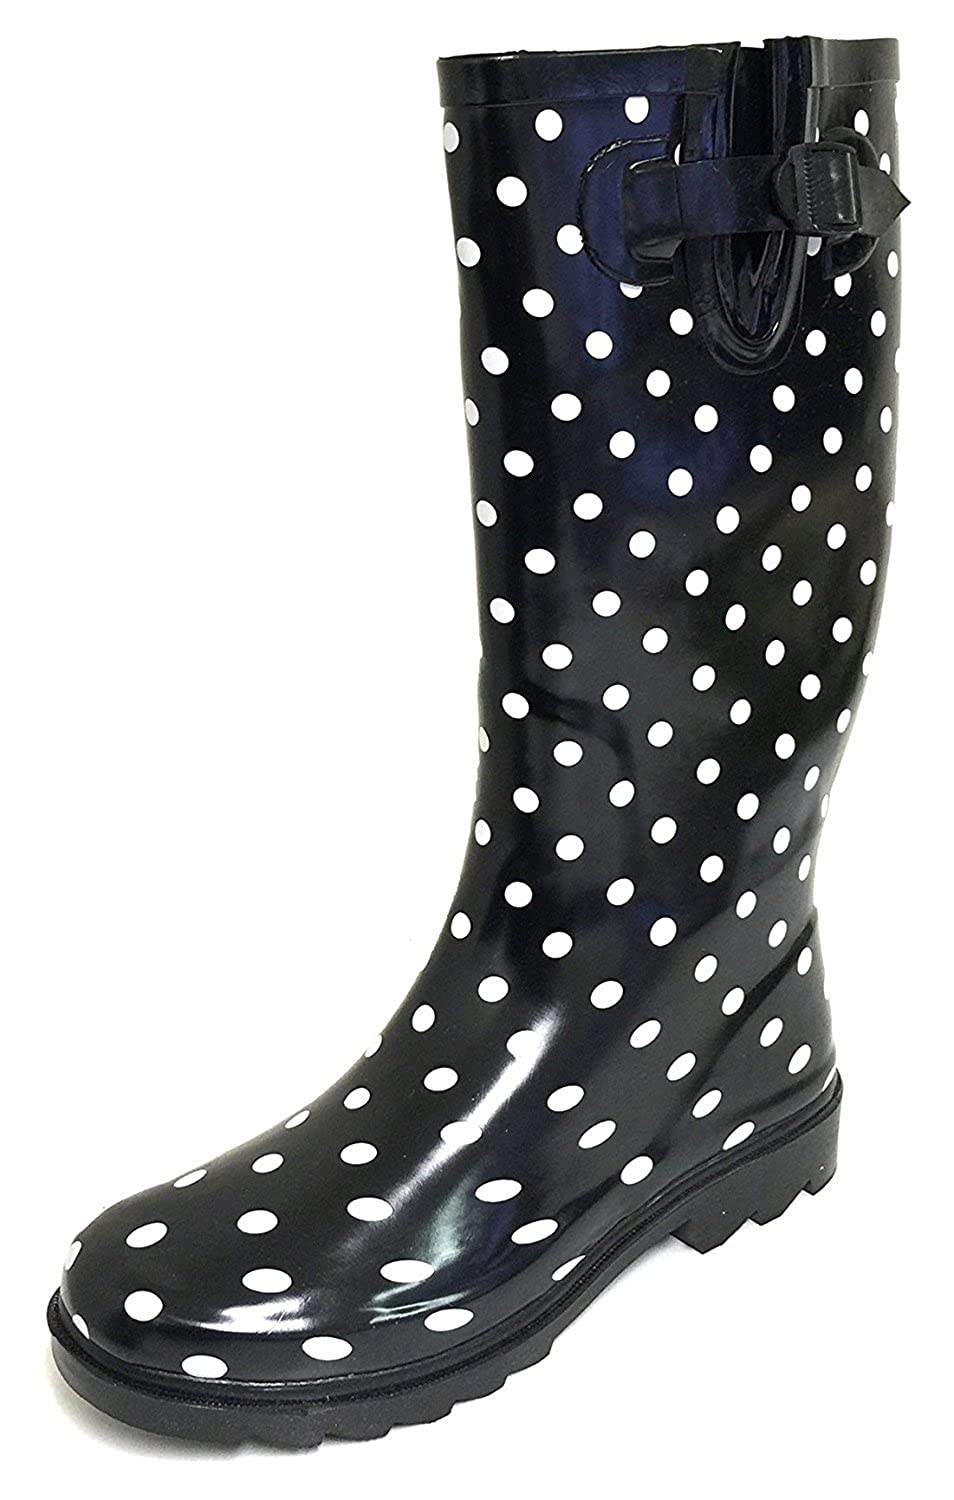 Black Polka Dots G4U Women's Rain Boots Multiple Styles color Mid Calf Wellies Buckle Fashion Rubber Knee High Snow shoes